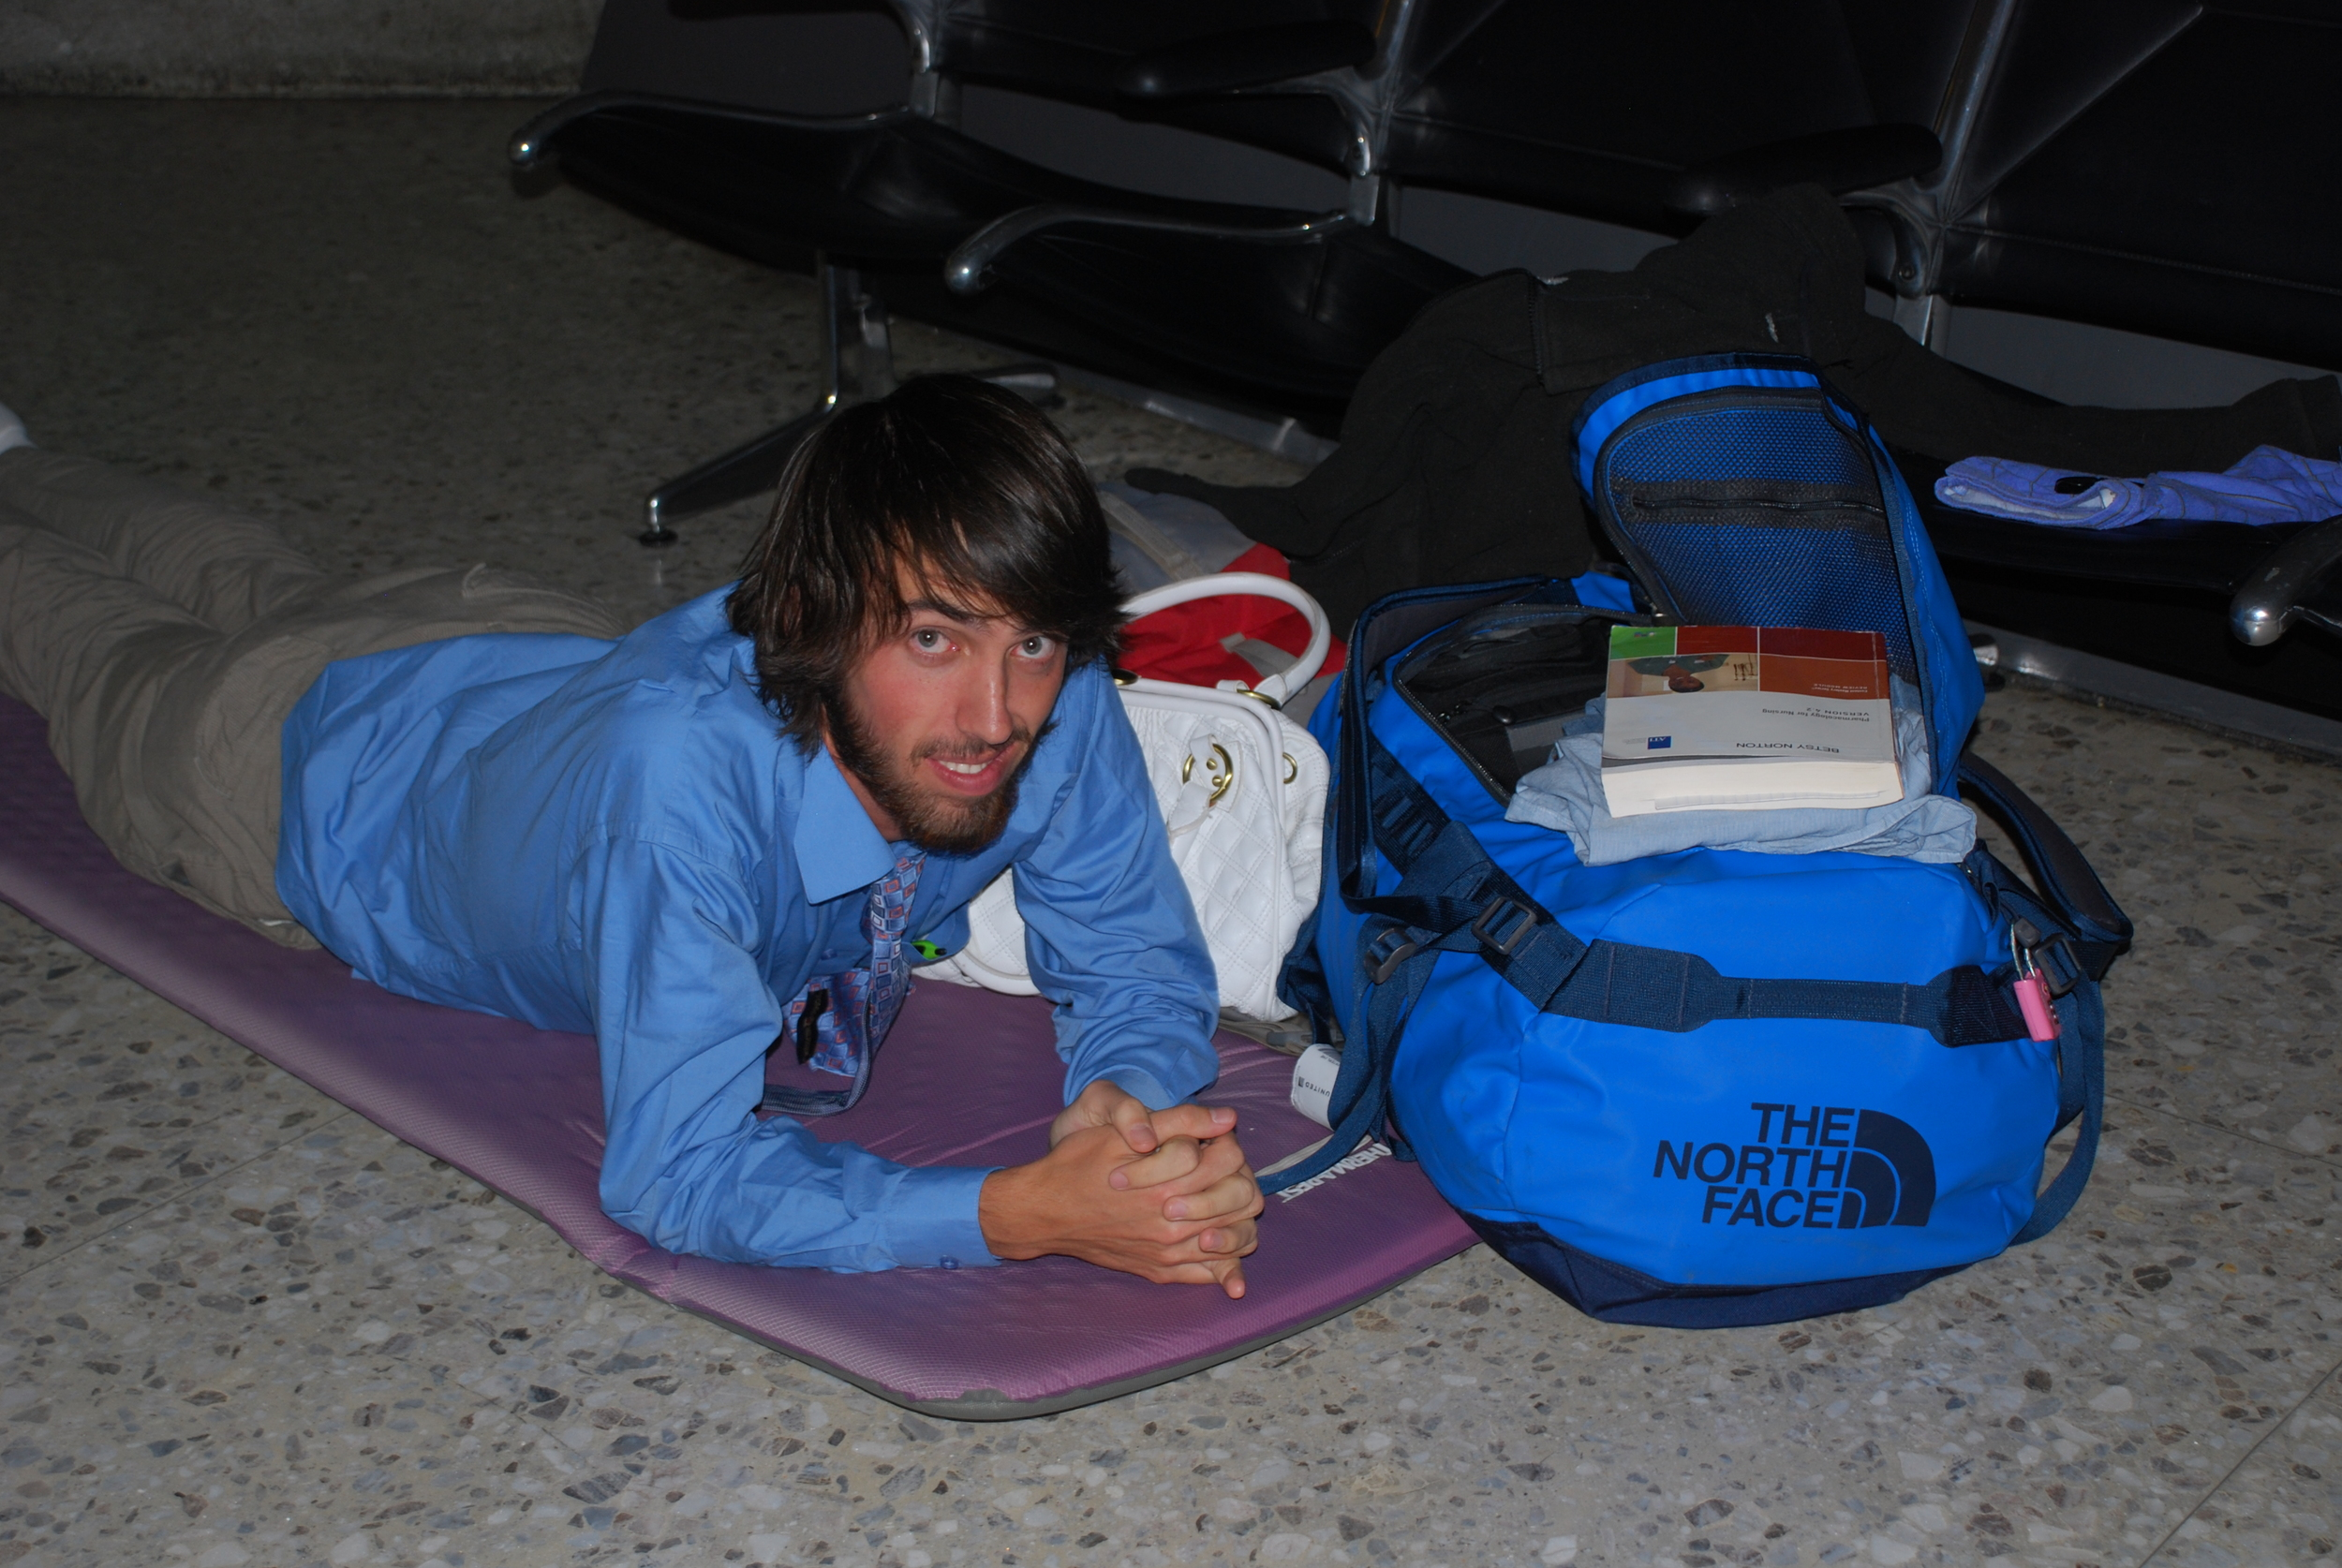 Heading to Africa with my Basecamp Duffel. Yes, we're sleeping on the floor in an airport.